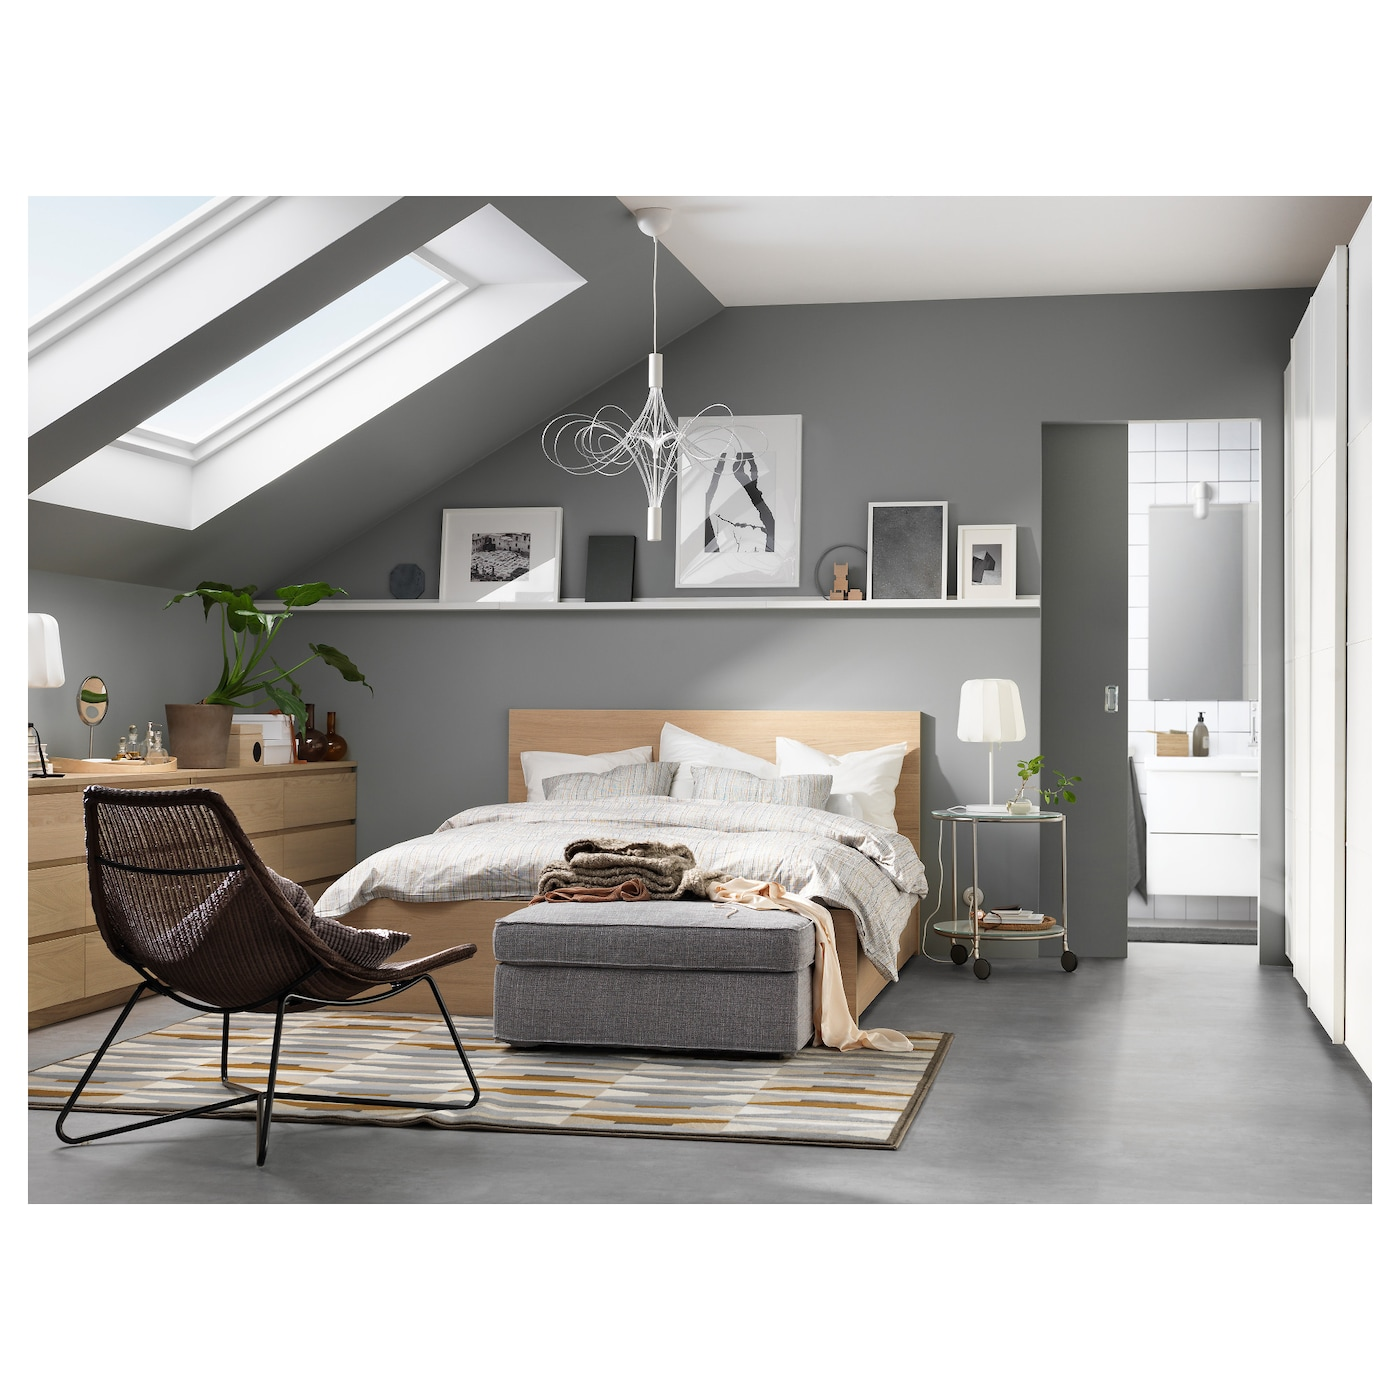 malm cadre de lit haut 2 rangements plaqu ch ne blanchi 160x200 cm ikea. Black Bedroom Furniture Sets. Home Design Ideas